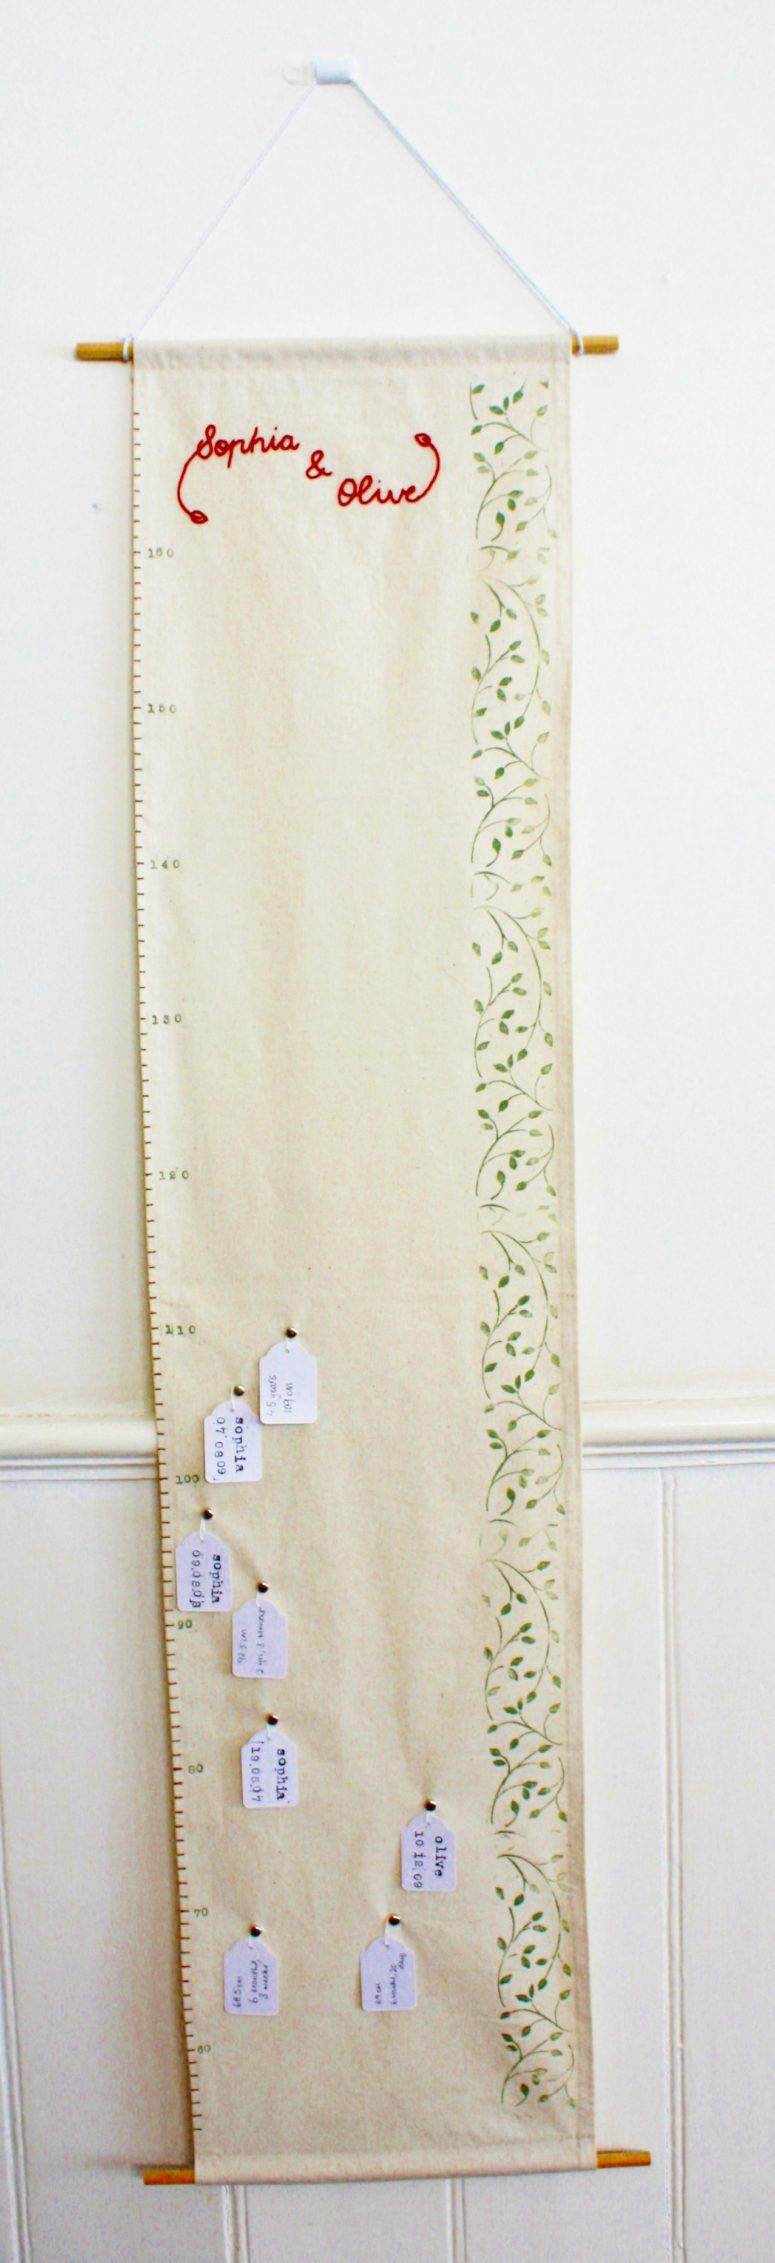 DIY fabric growth chart with tags on decorative nails (via twirlingbetty.wordpress.com)